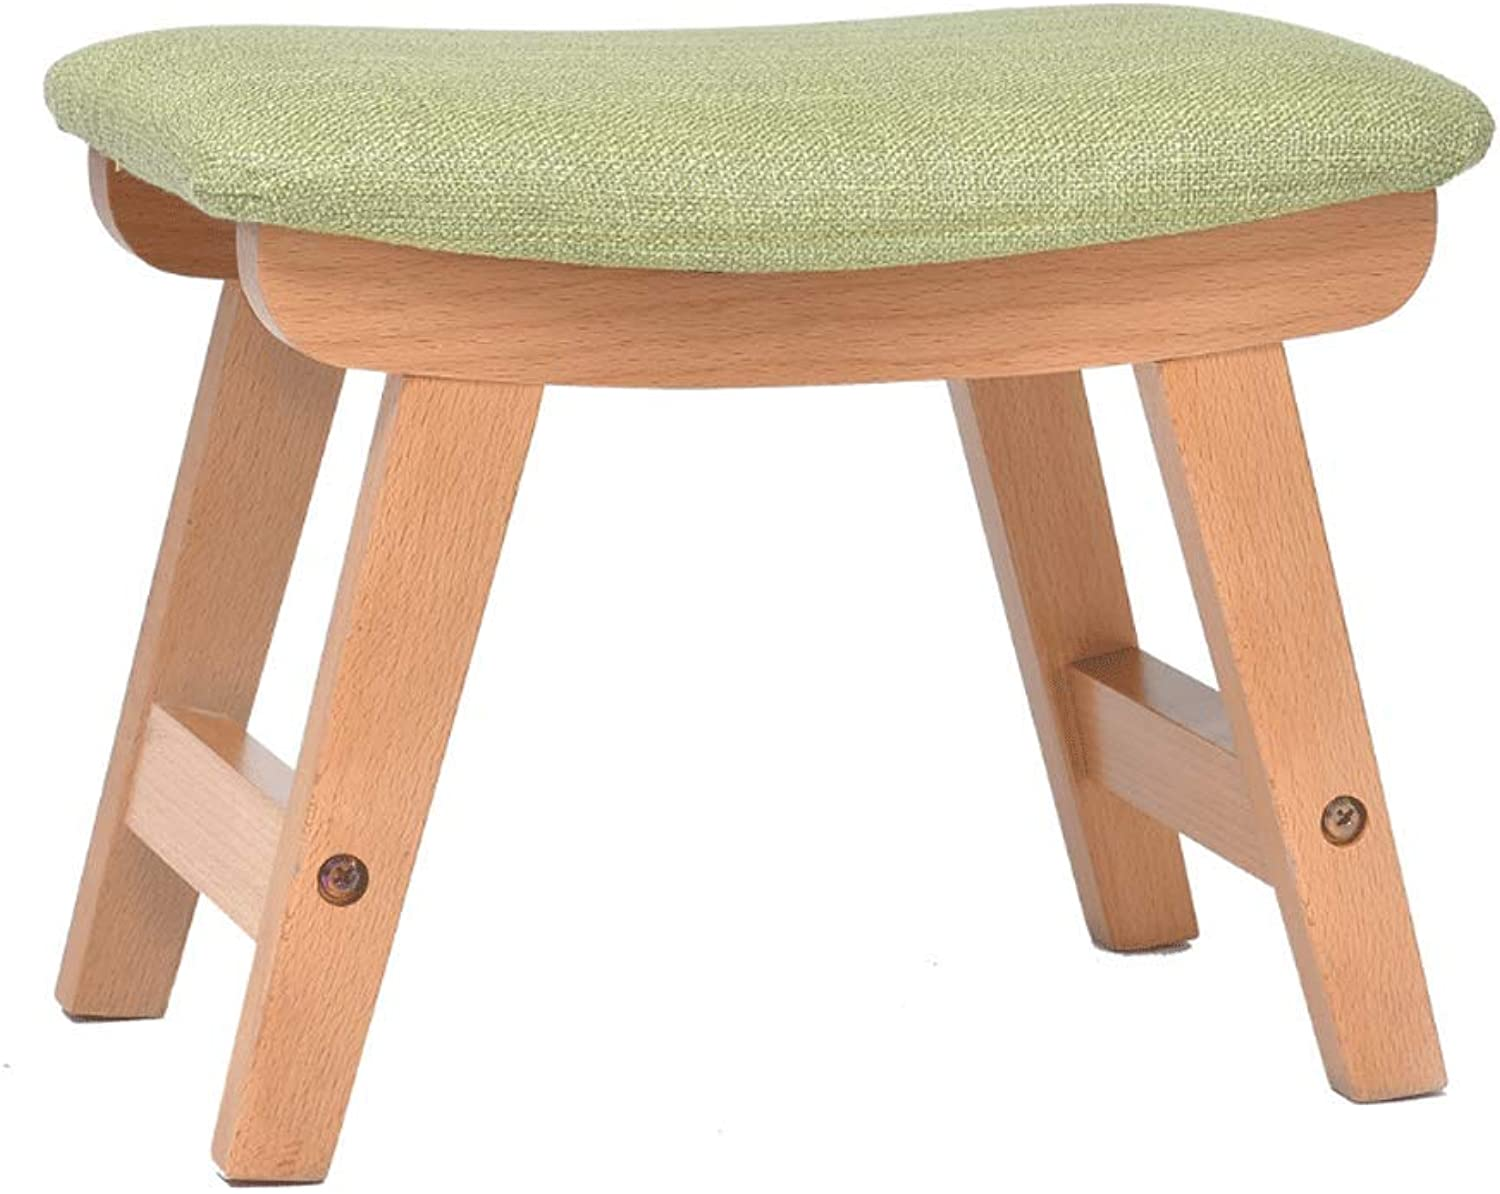 Solid Wood Small Stool Casual Fashion Stool Change shoes Stool Creative Small Bench